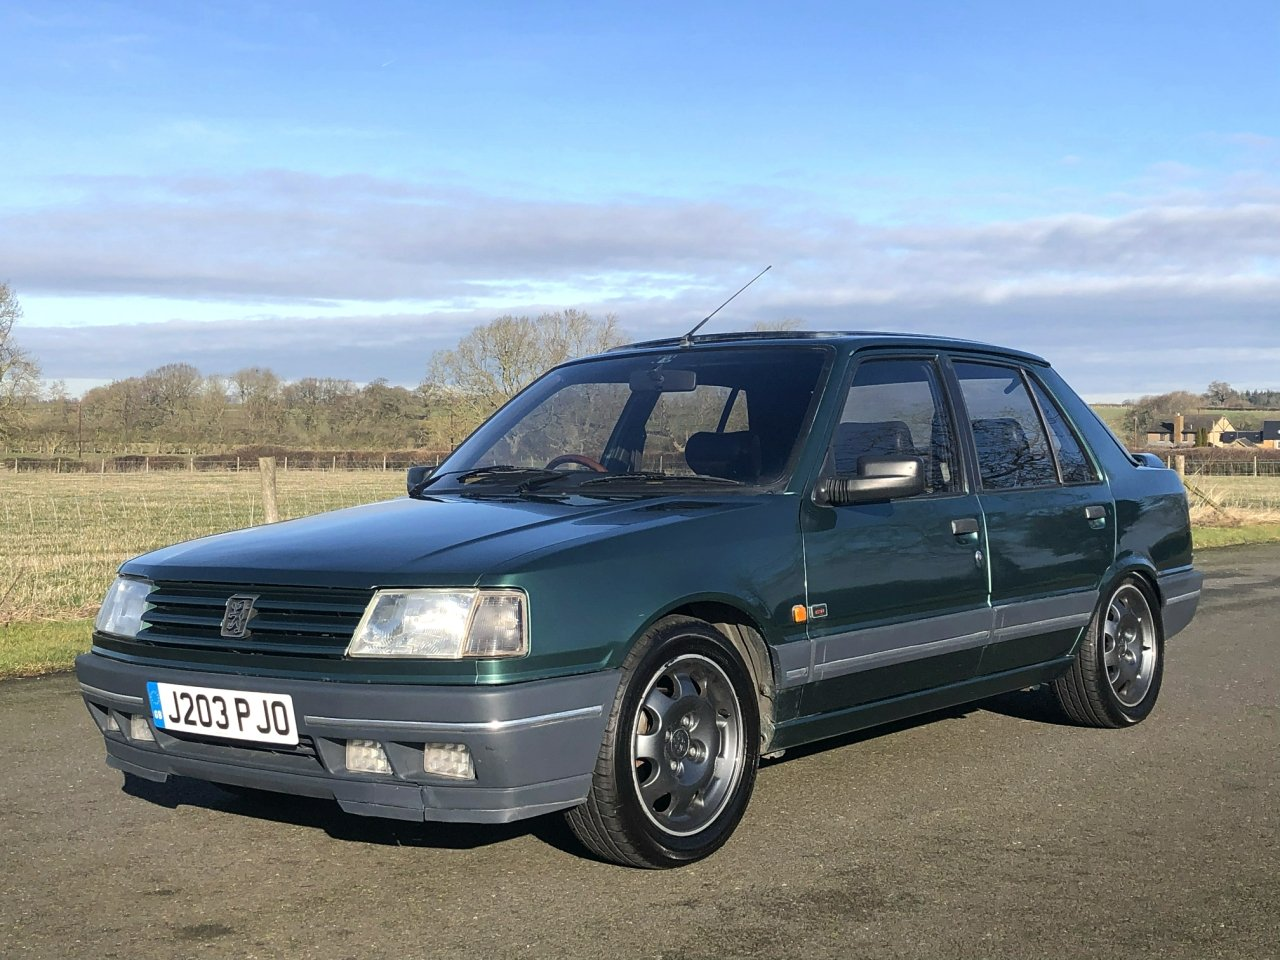 1992 Peugeot 309 GTI Goodwood Limited Edition SOLD (picture 1 of 6)